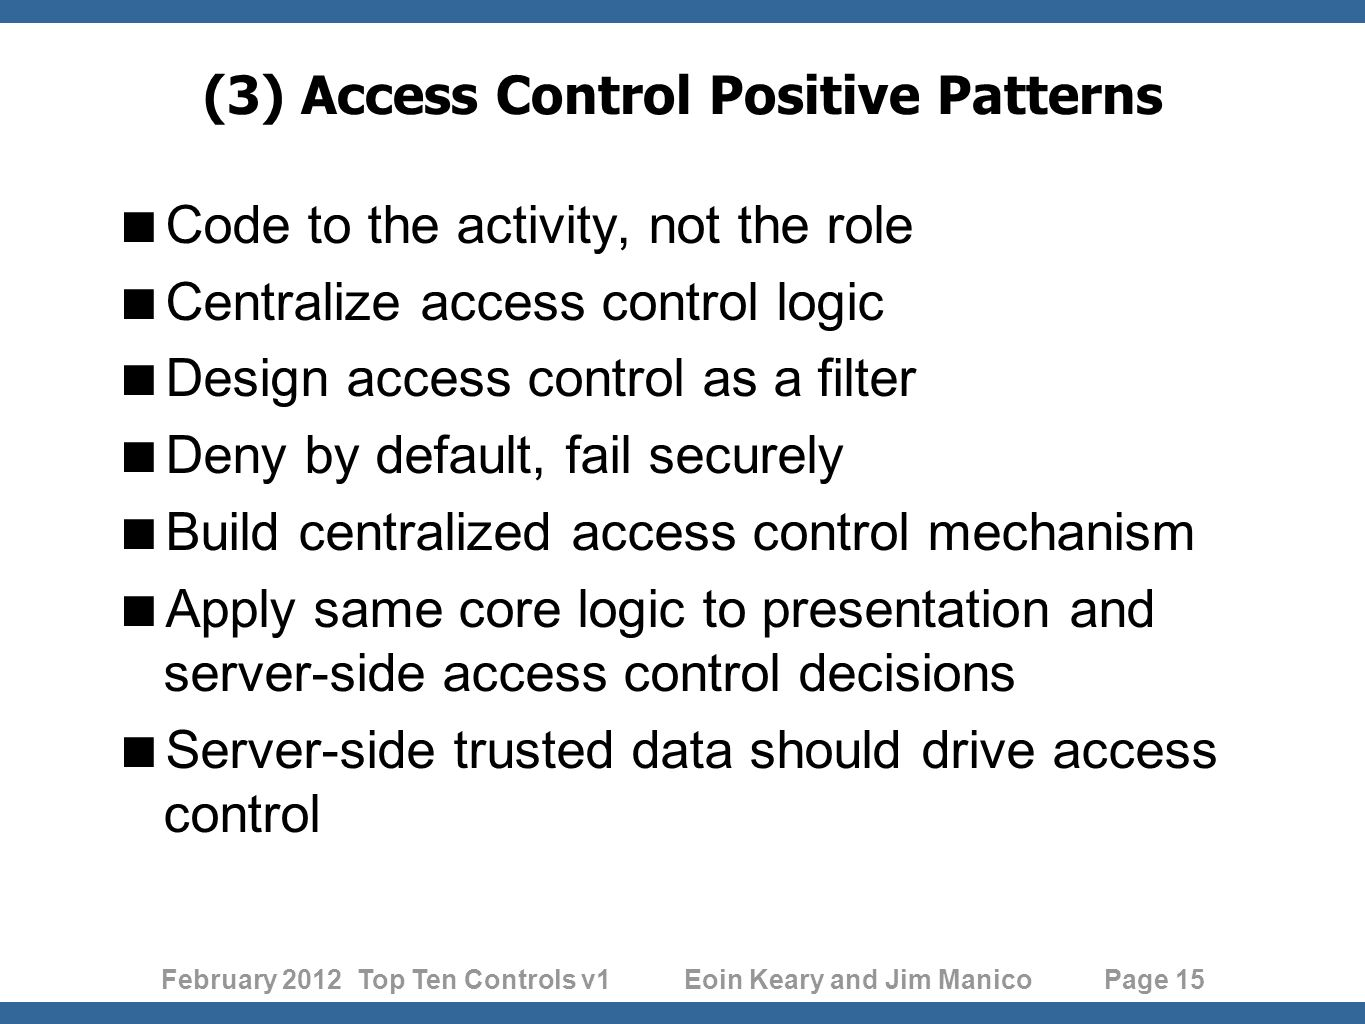 February 2012 Top Ten Controls v1 Eoin Keary and Jim Manico Page 15 (3) Access Control Positive Patterns Code to the activity, not the role Centralize access control logic Design access control as a filter Deny by default, fail securely Build centralized access control mechanism Apply same core logic to presentation and server-side access control decisions Server-side trusted data should drive access control